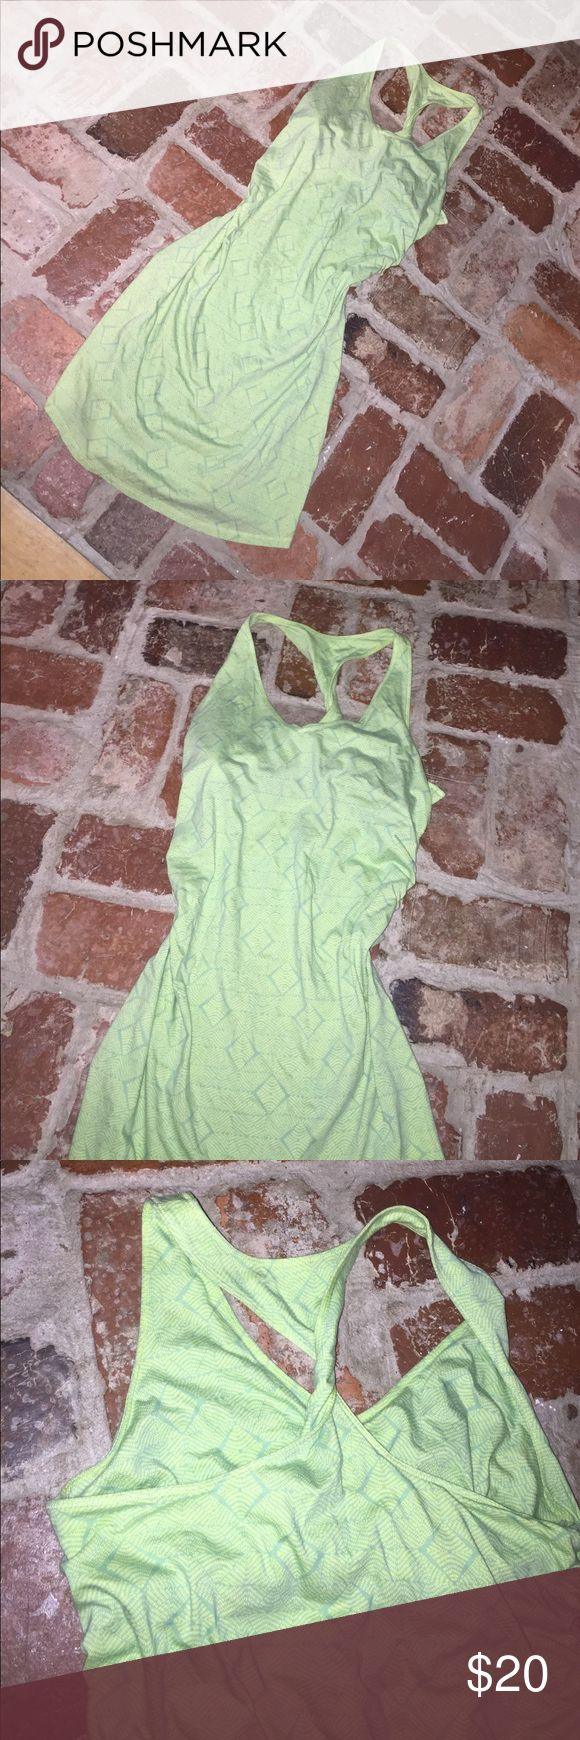 Patagonia dress Very soft and comfy!! Ranches at the waist... bra top built in Patagonia Dresses Midi